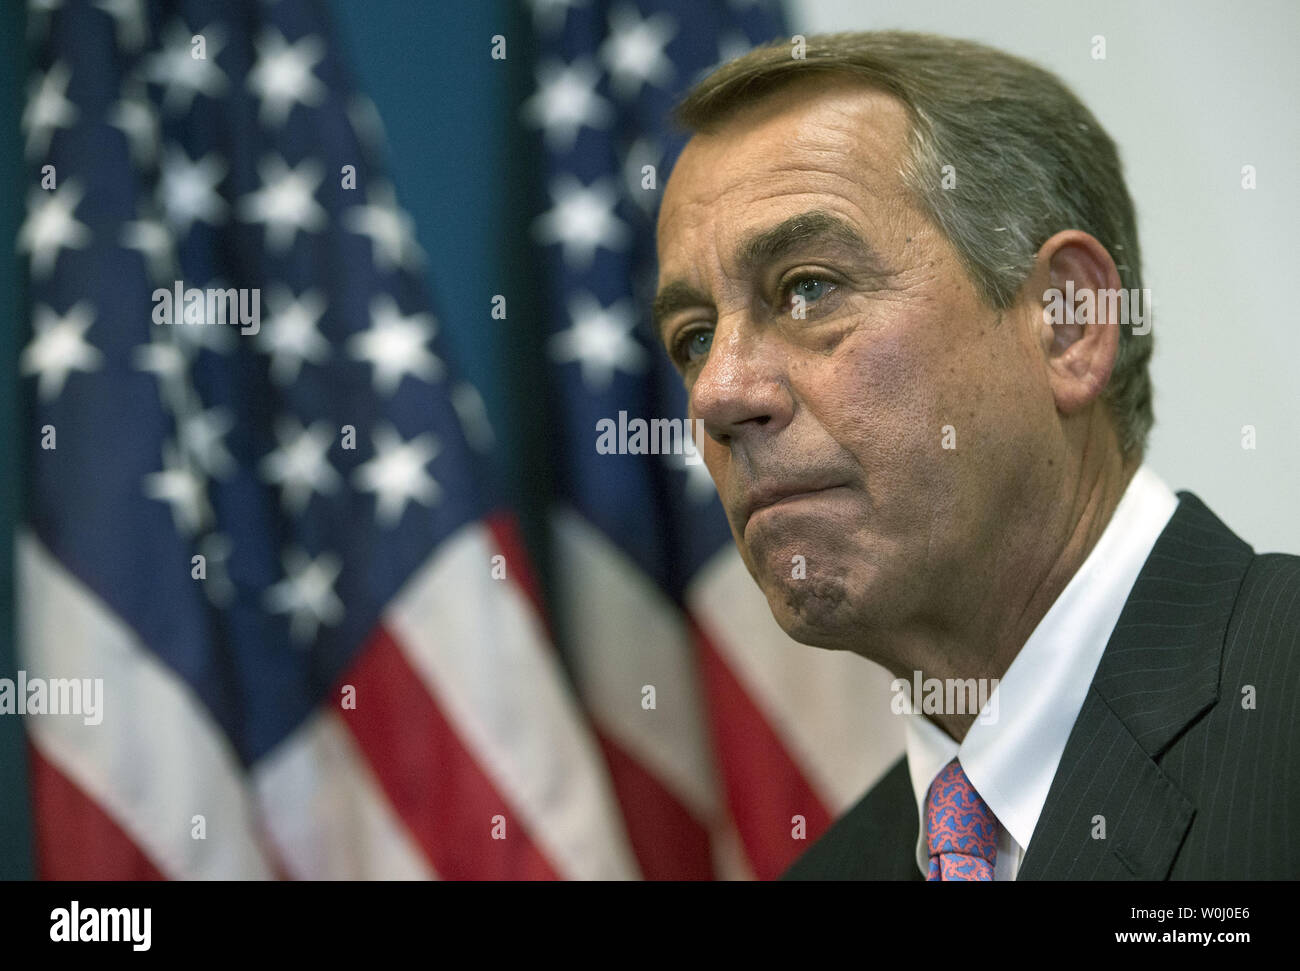 Speaker of the House John Boehner (R-OH) listens during a weekly press conference on Capitol Hill in Washington, D.C. on September 29, 2015. Photo by Kevin Dietsch/UPI - Stock Image